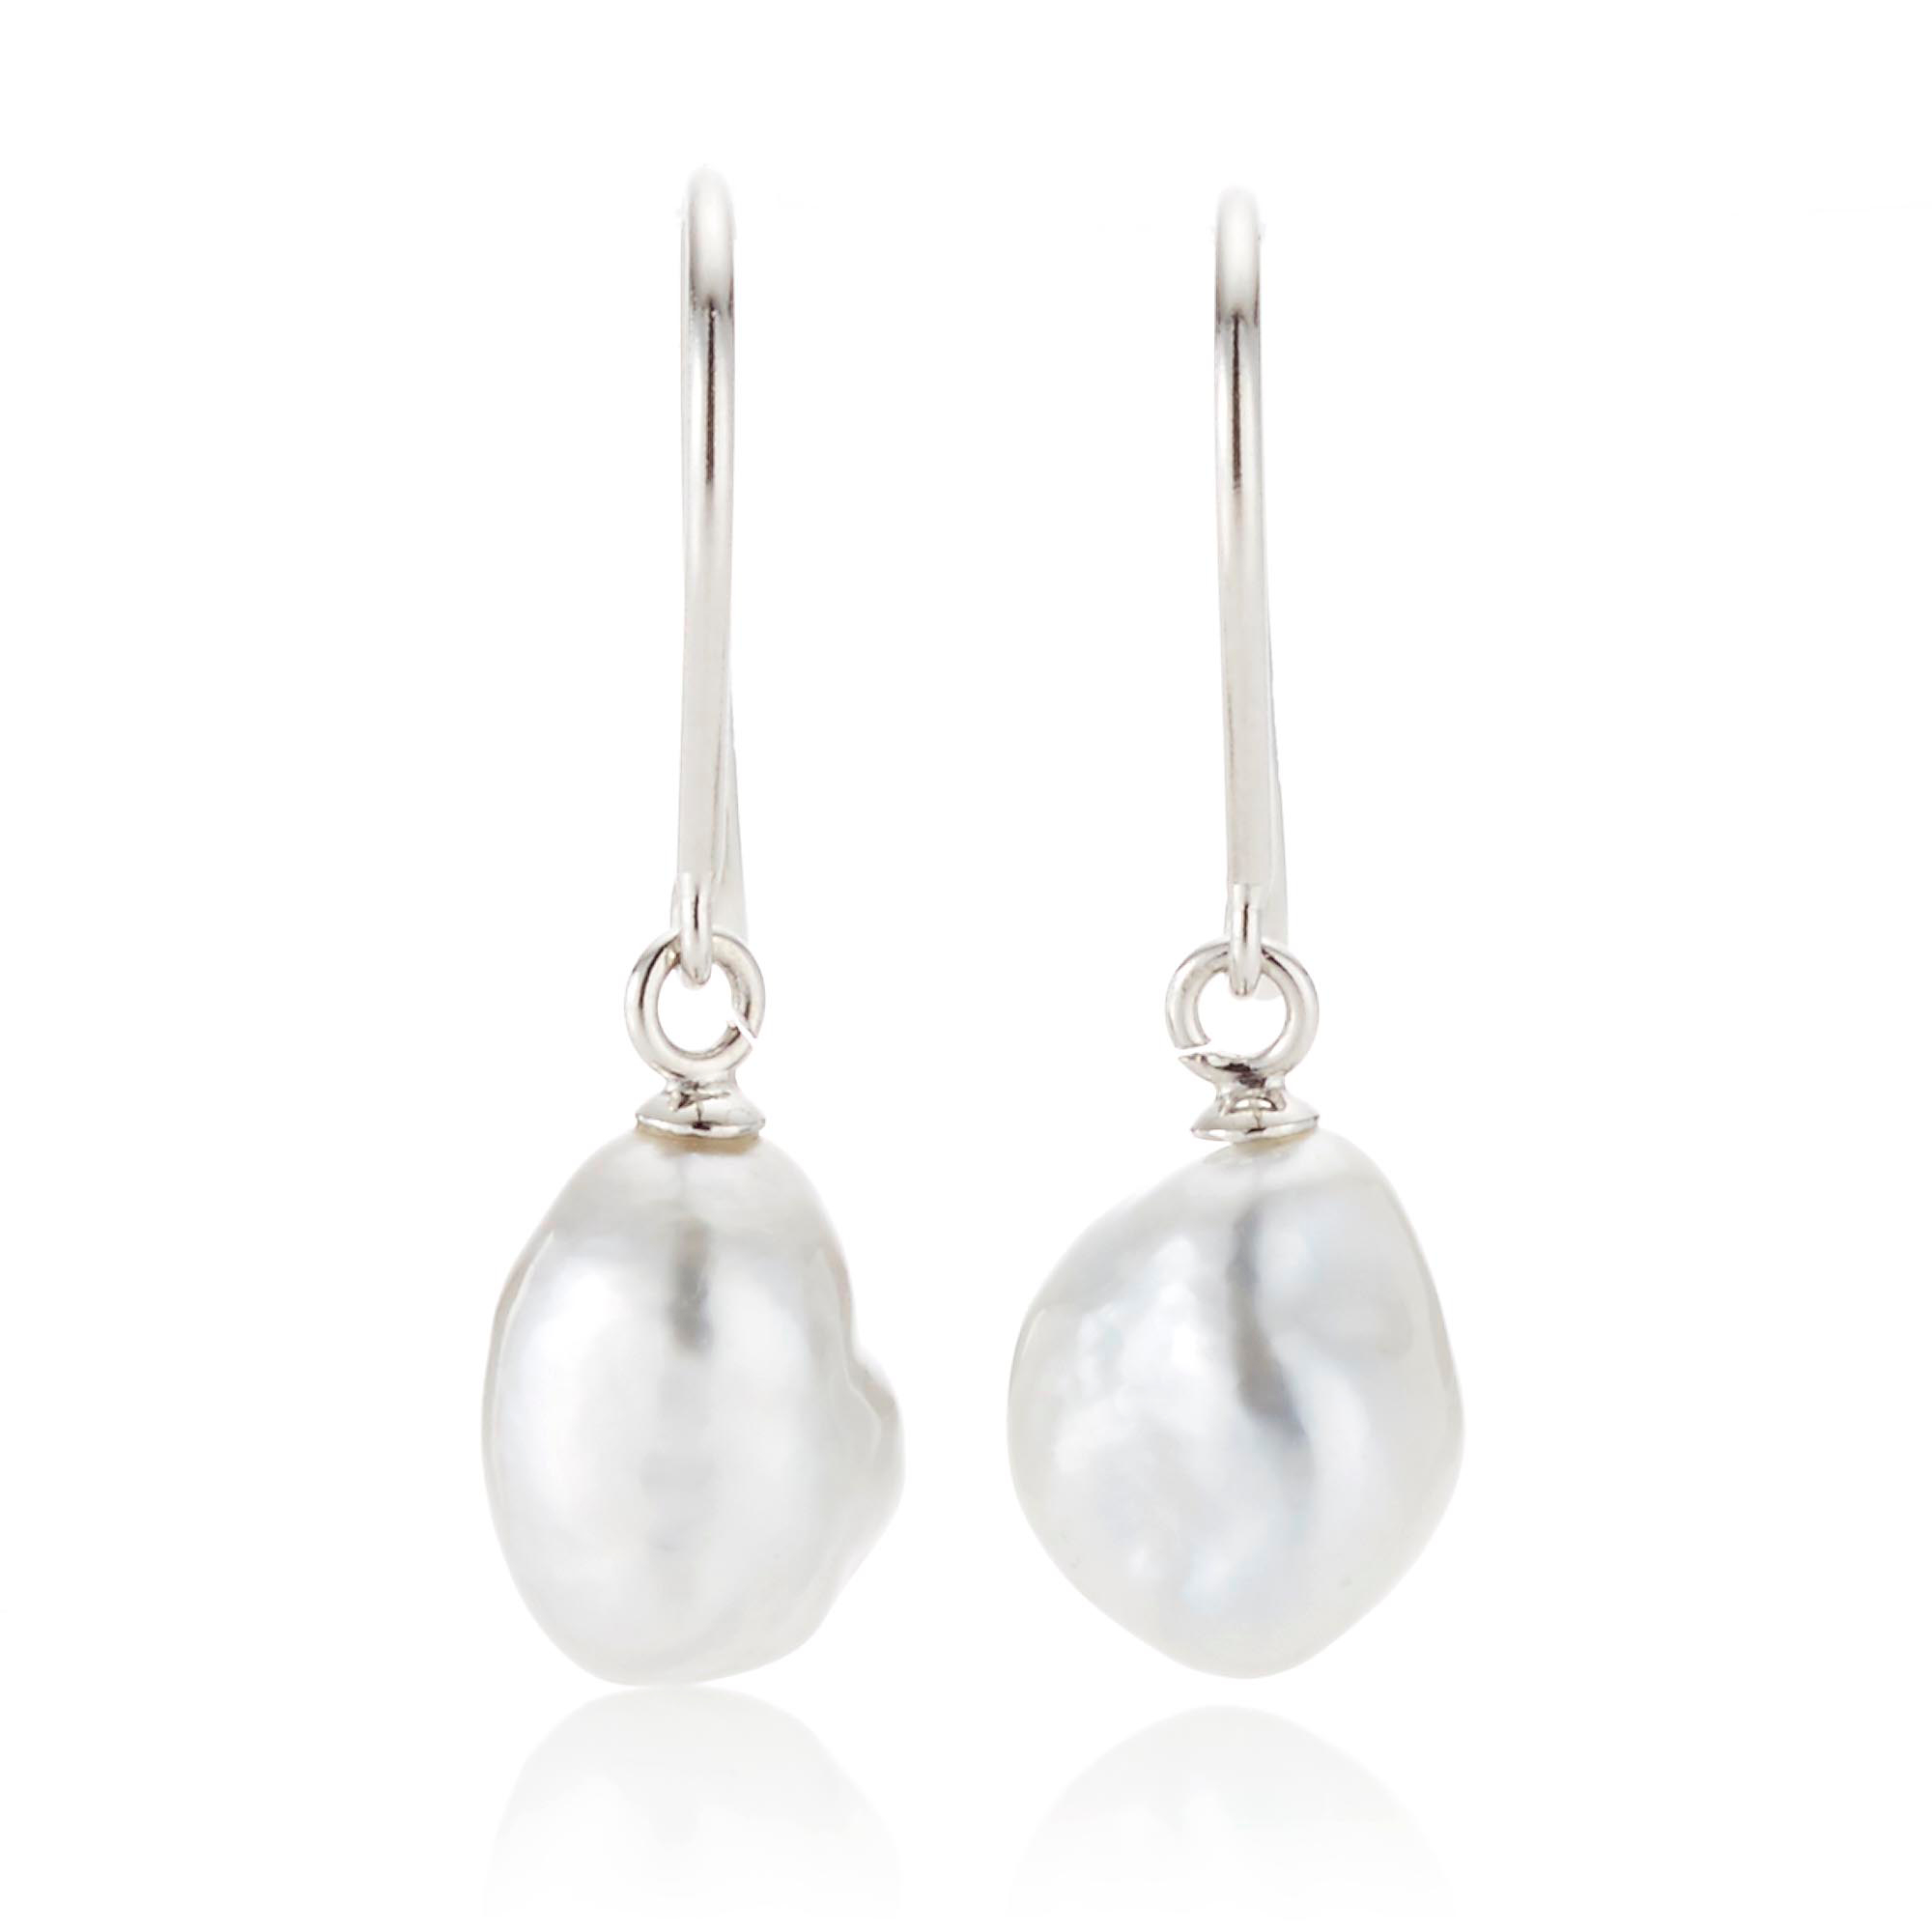 Gump's Keshi South Sea Pearl White Gold Drop Earrings, 6 x 9mm